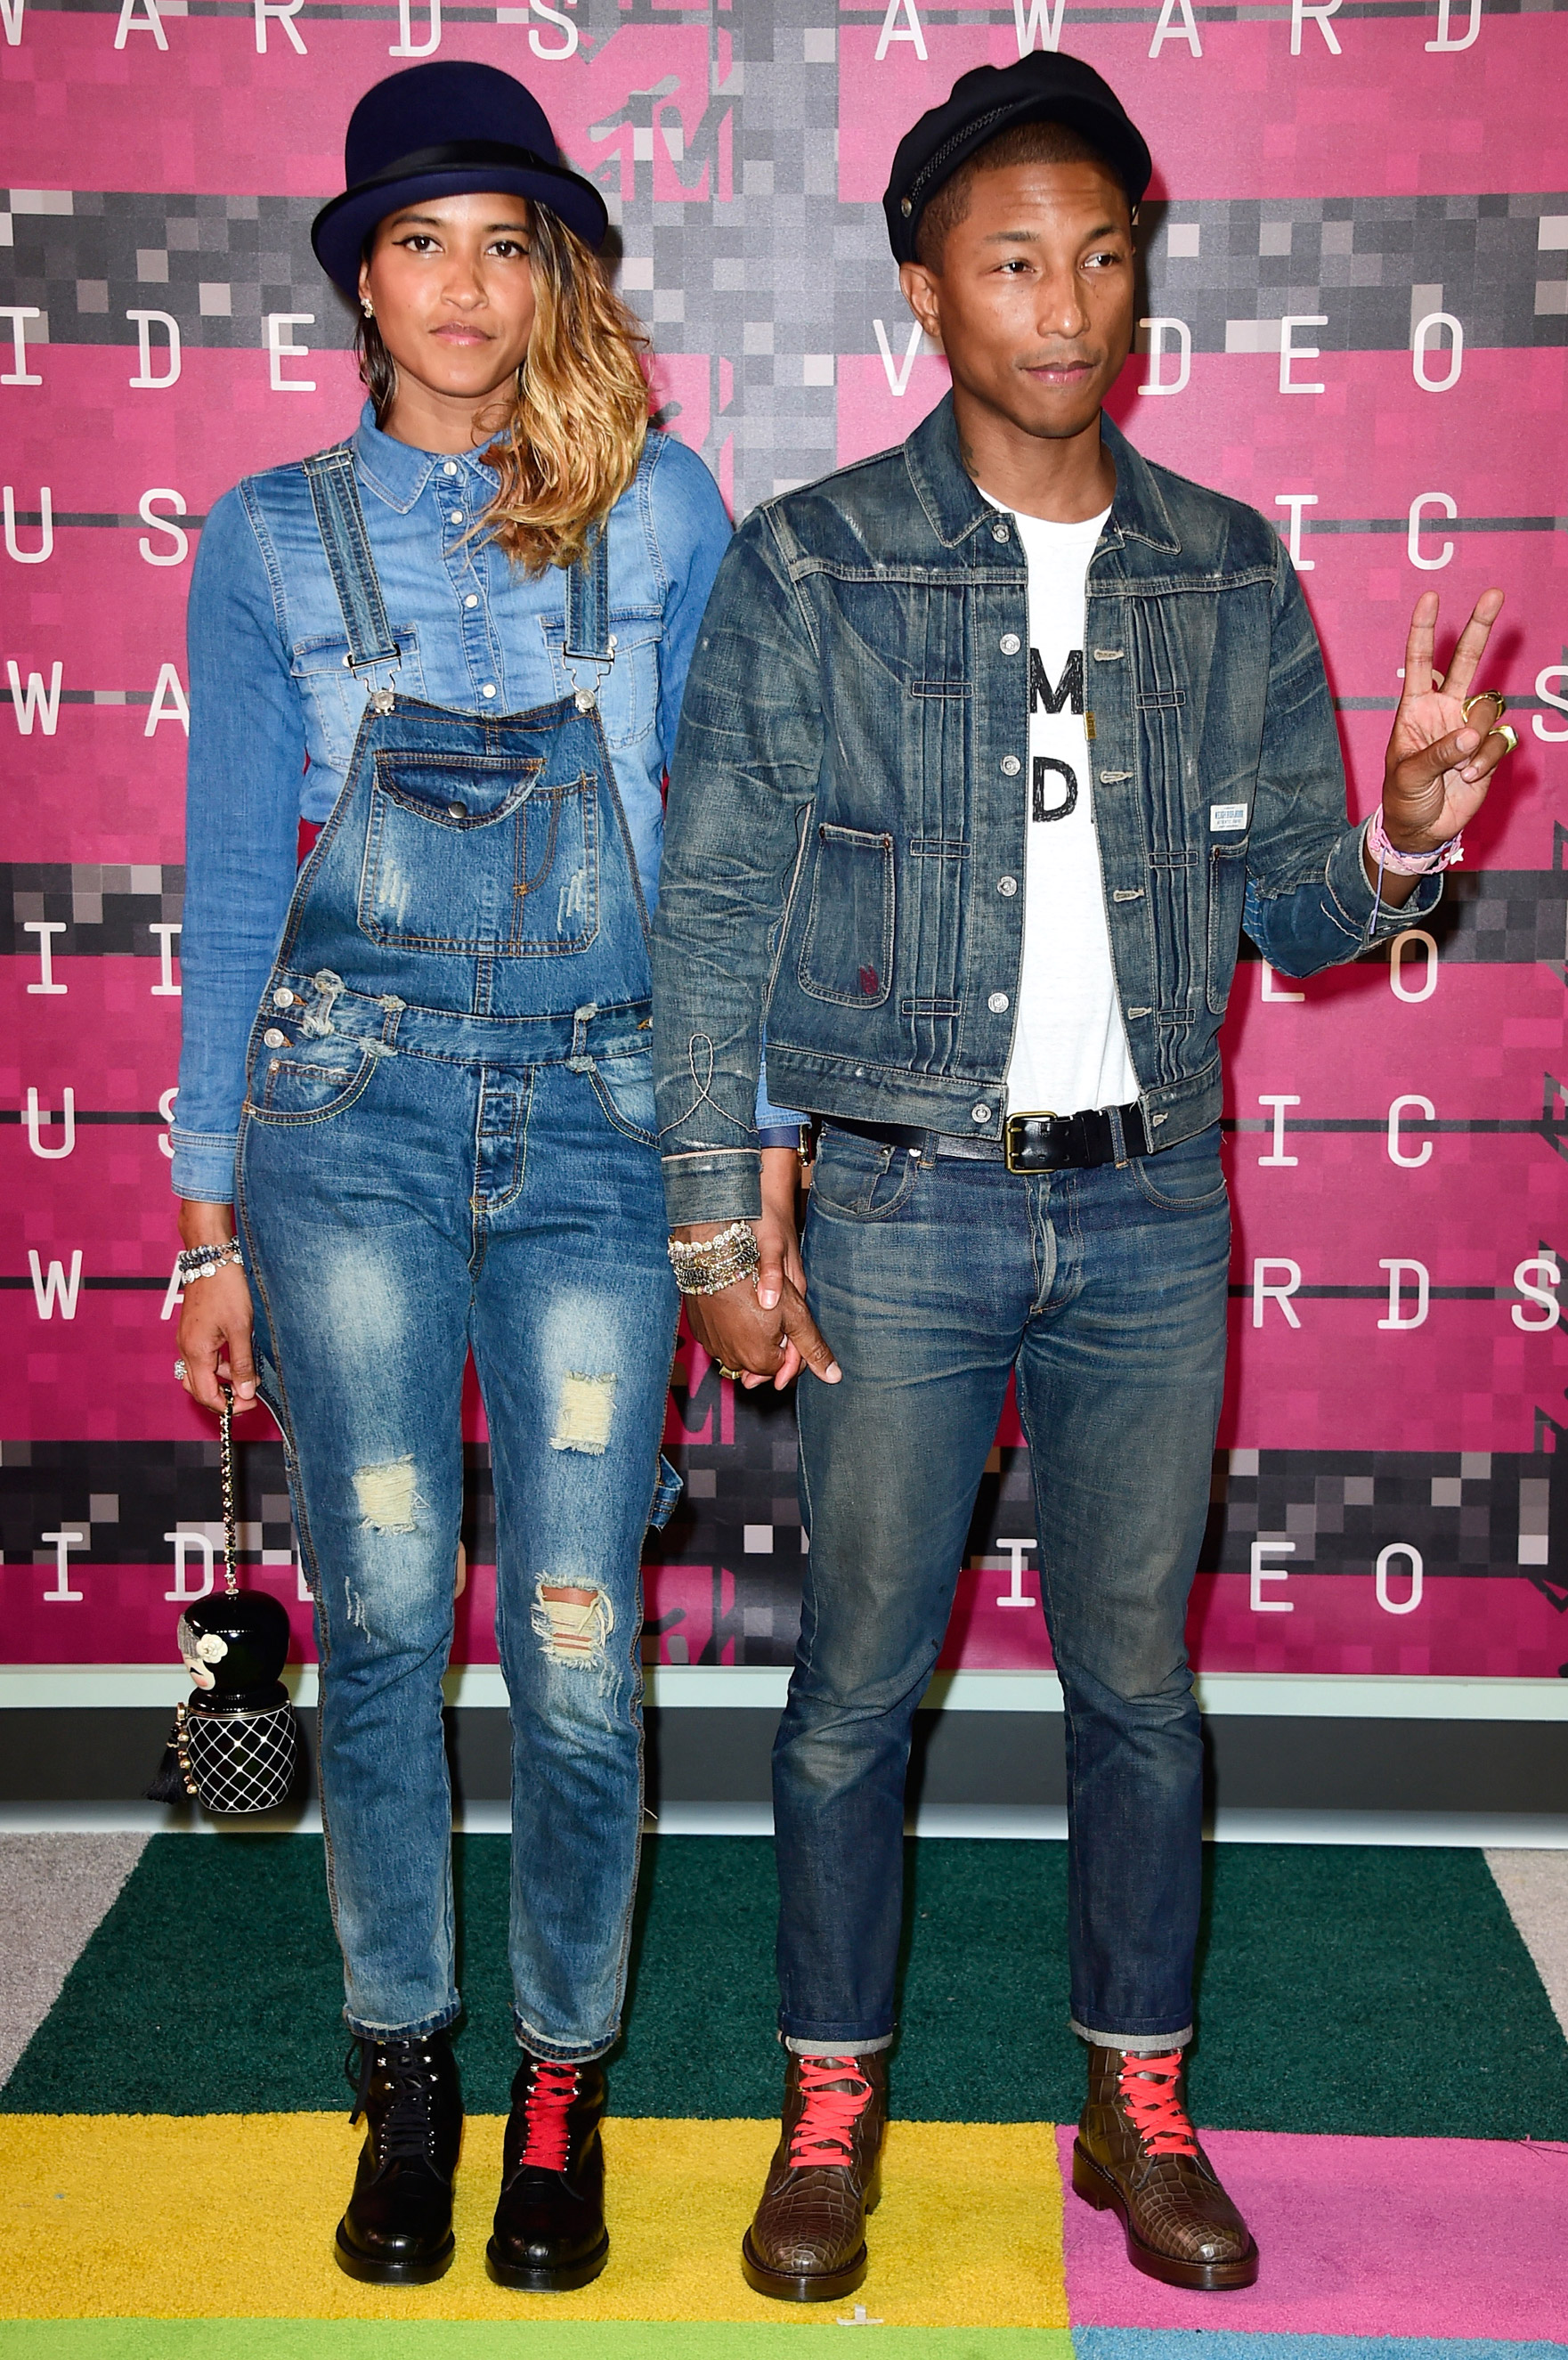 From left: Model Helen Lasichanh  and Pharrell Williams arrive at the 2015 MTV Video Music Awards at Microsoft Theater on Aug. 30, 2015 in Los Angeles.